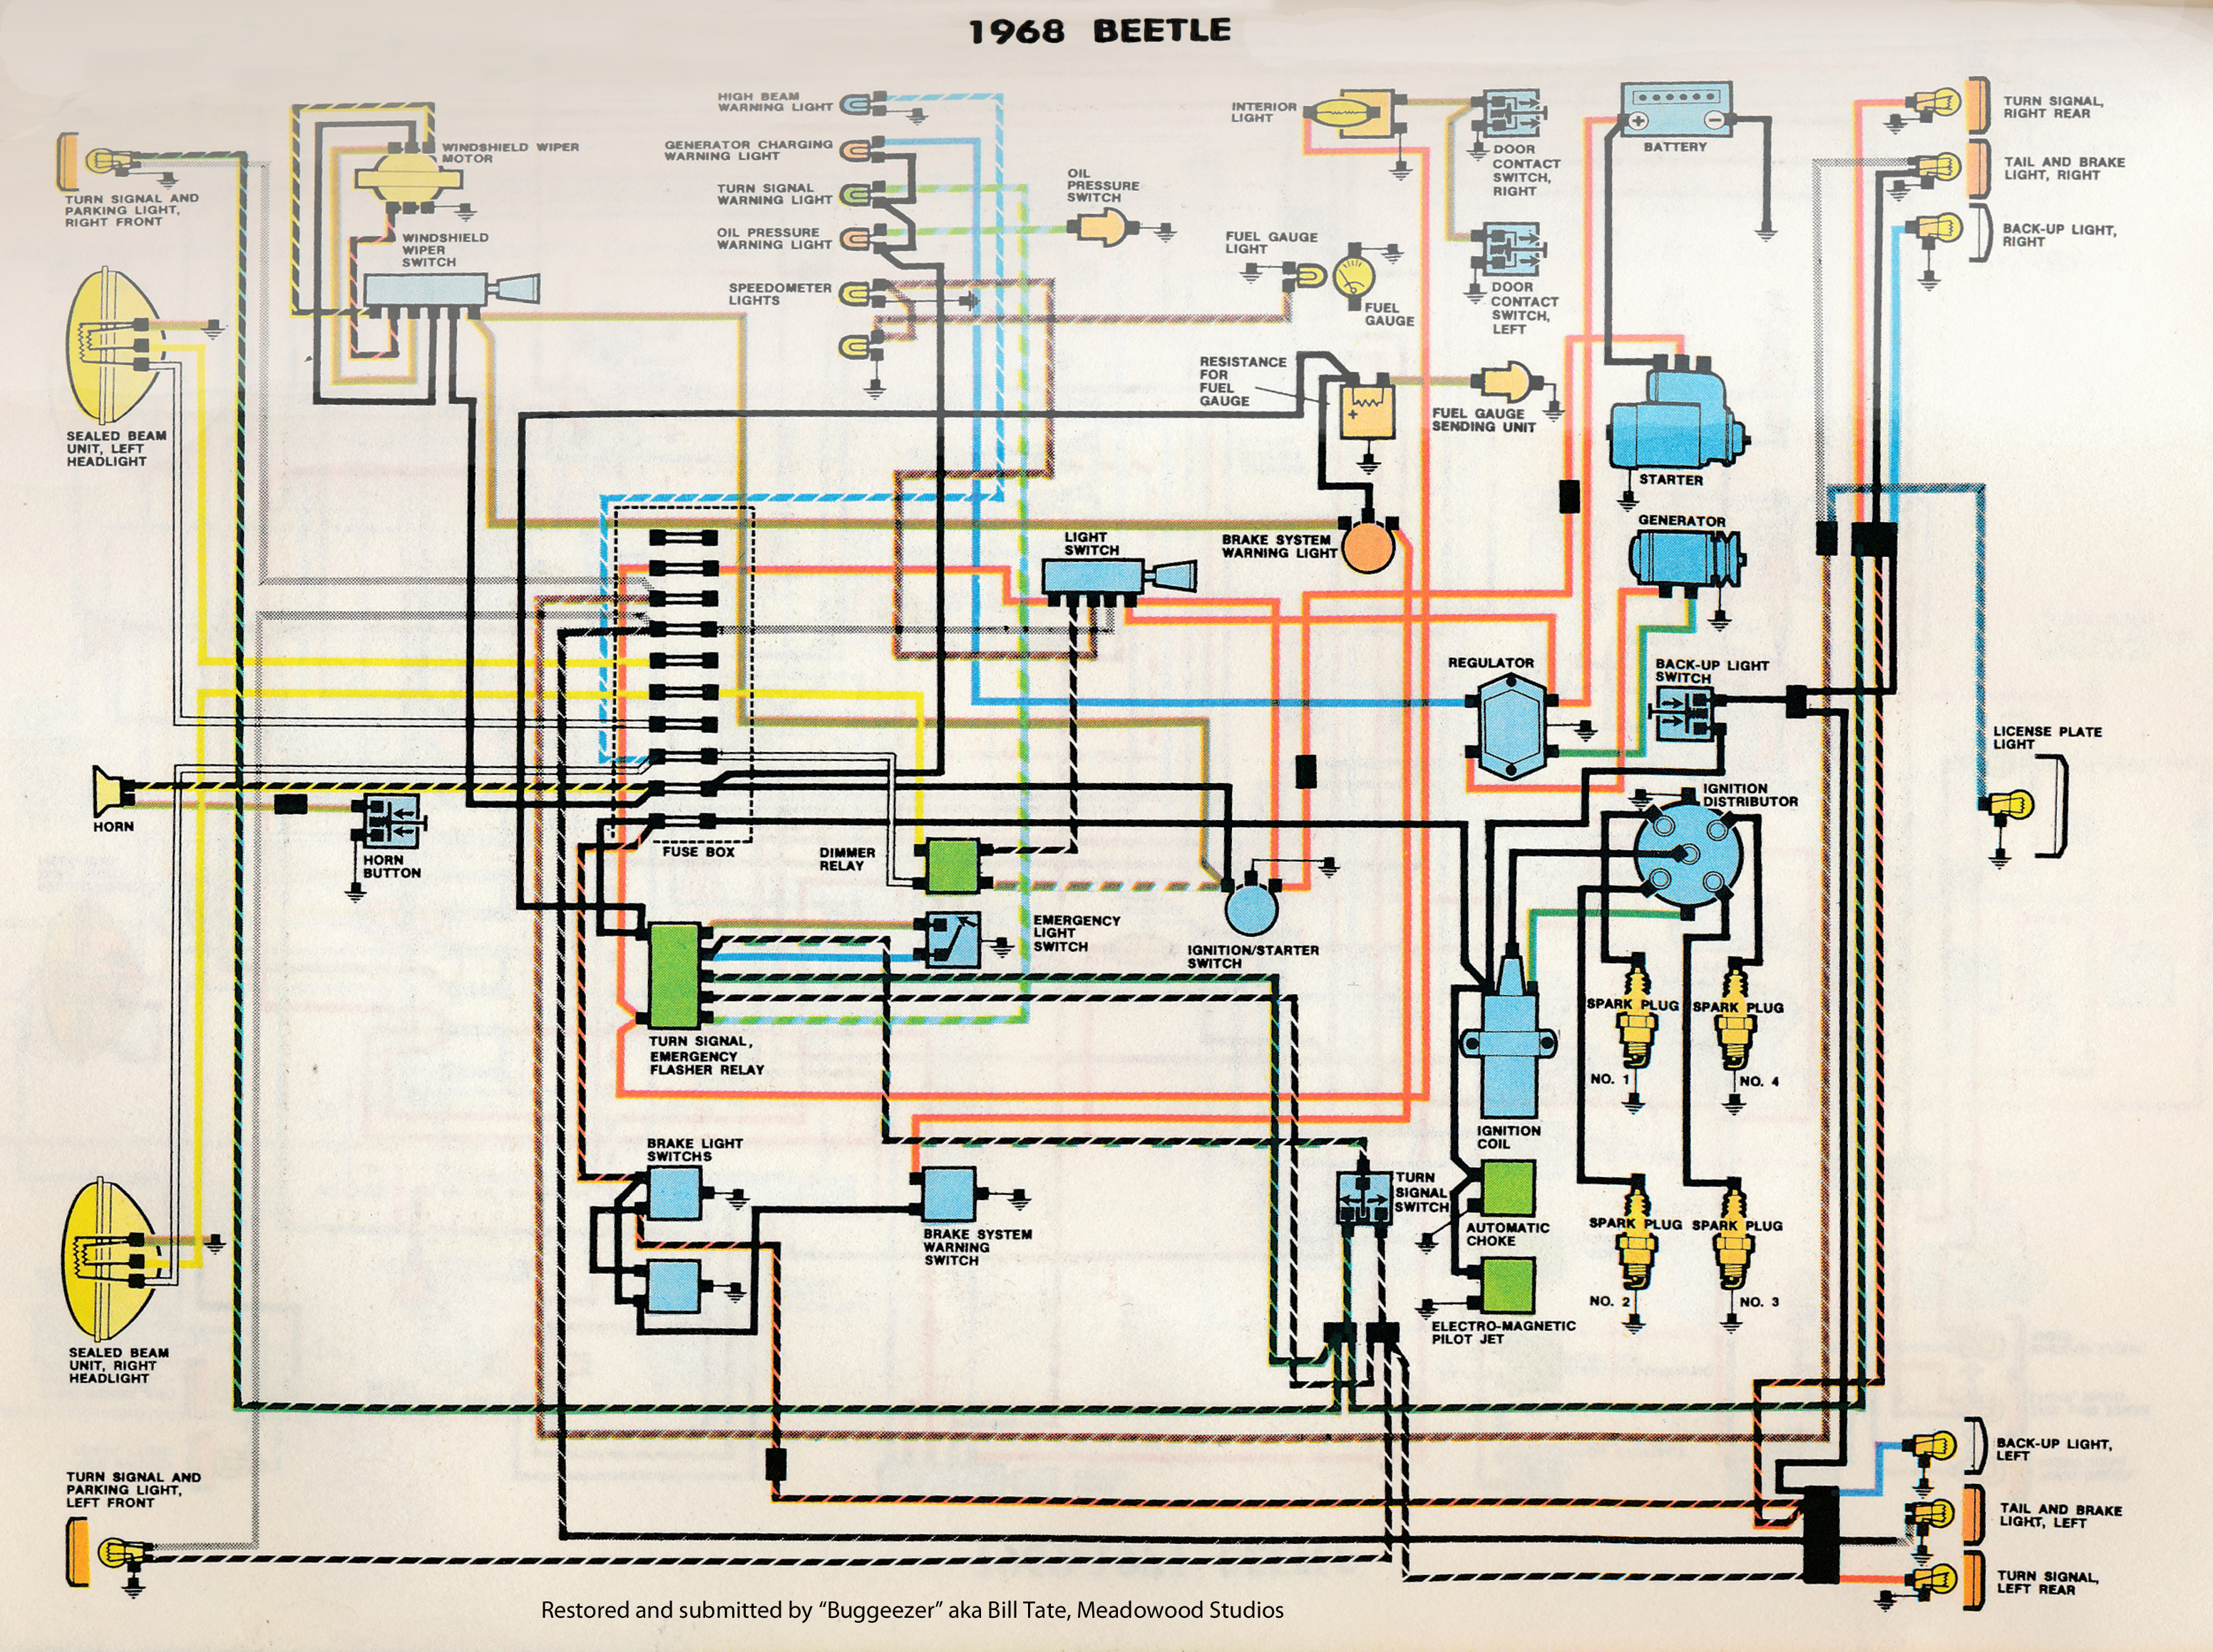 1970 beetle wiring diagram 2000 international 4900 info from